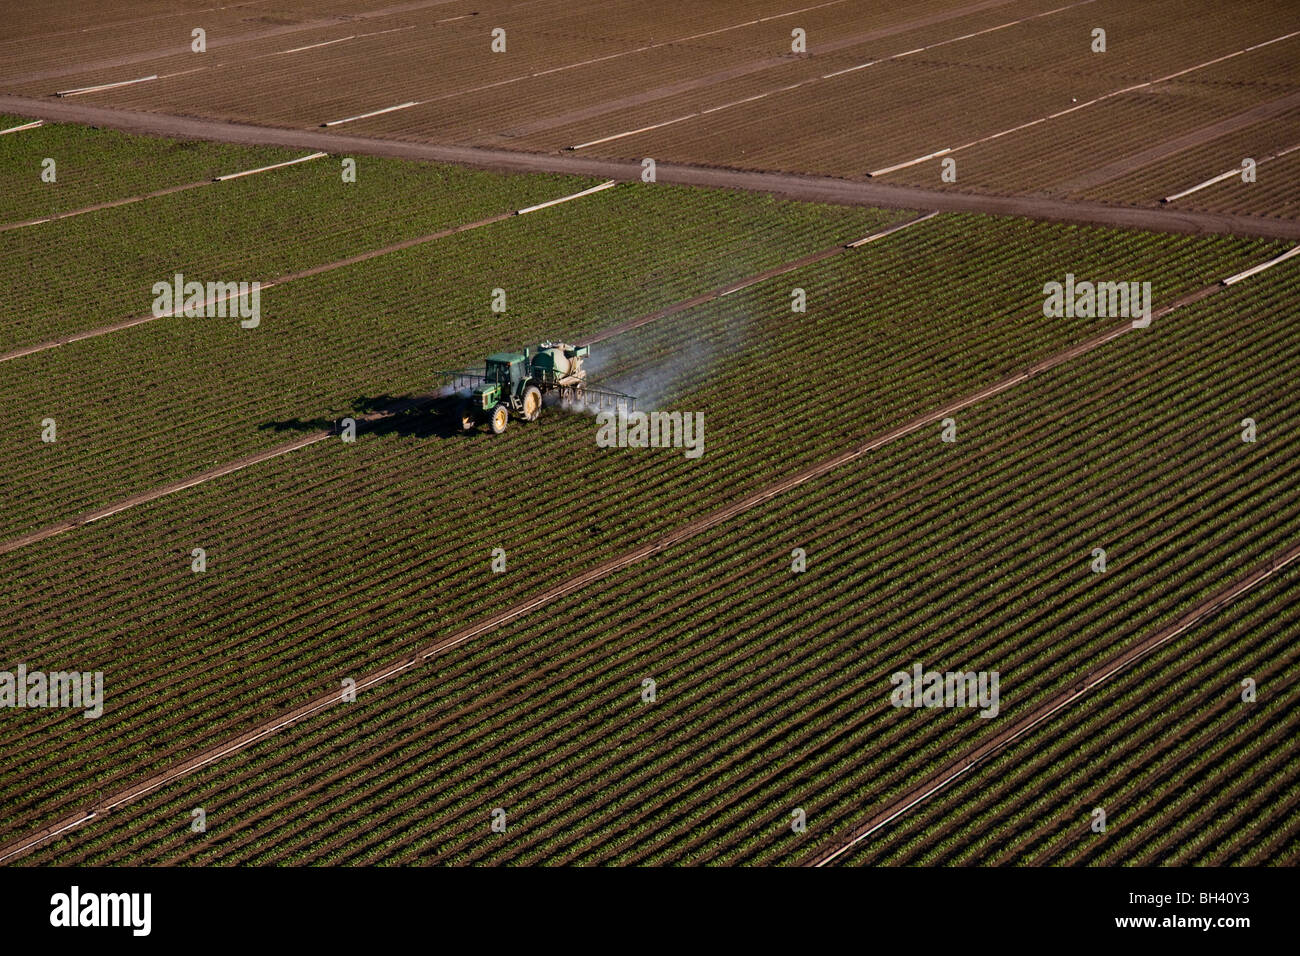 Fertilizing Crops, Southern Florida Agriculture - Stock Image